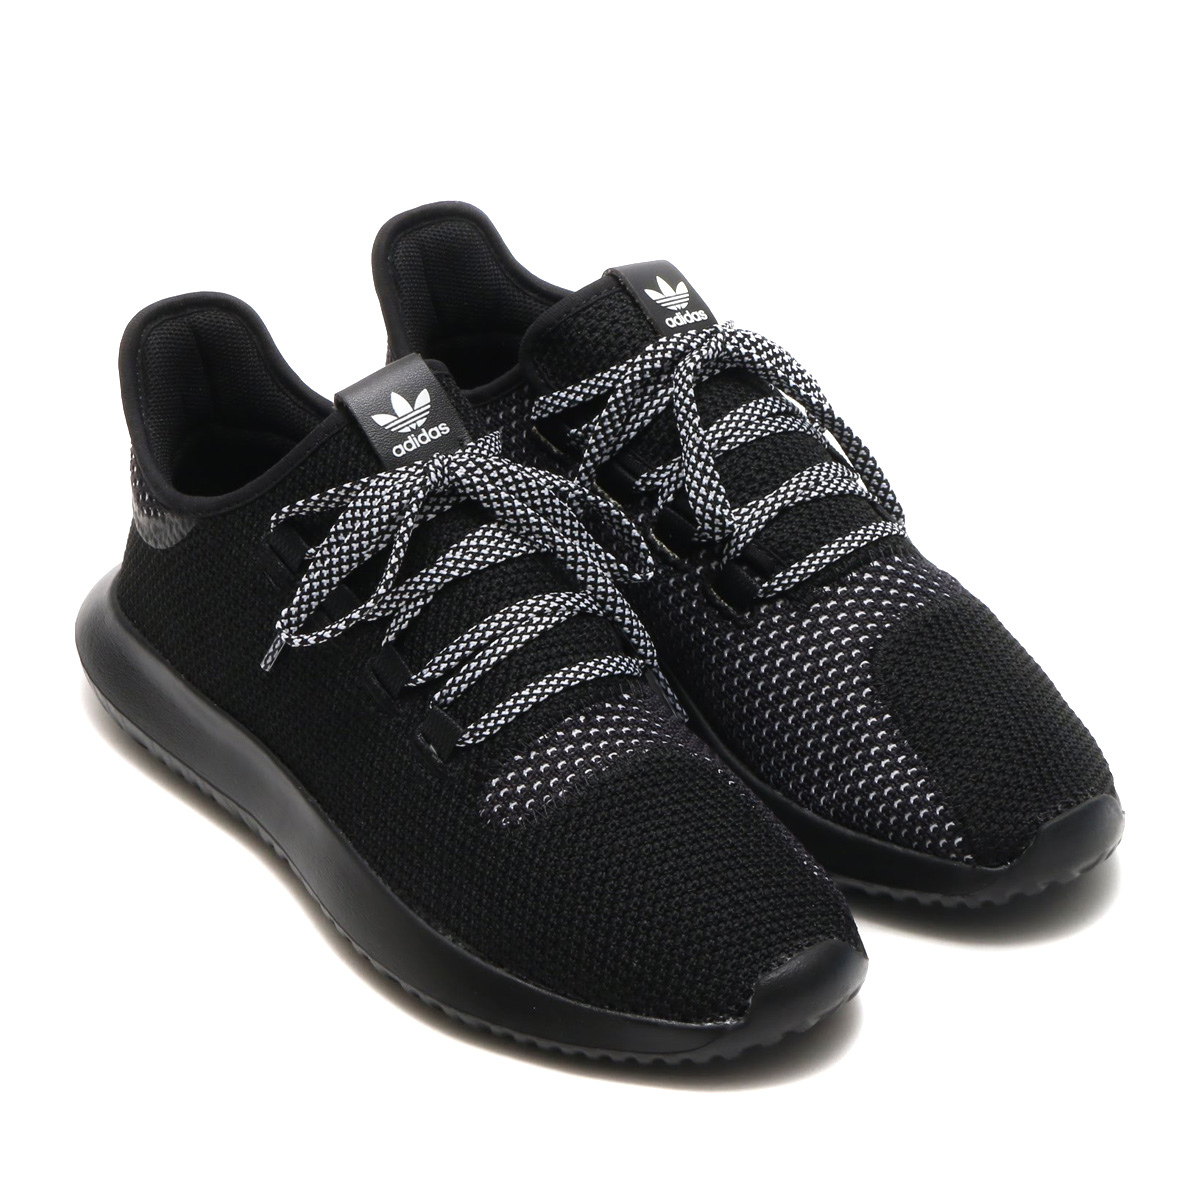 adidas Originals TUBULAR SHADOW CK (アディダスオリジナルスチュブラーシャドウ CK) Core  Black Core Black Ftwr White18SP-S 903588e17